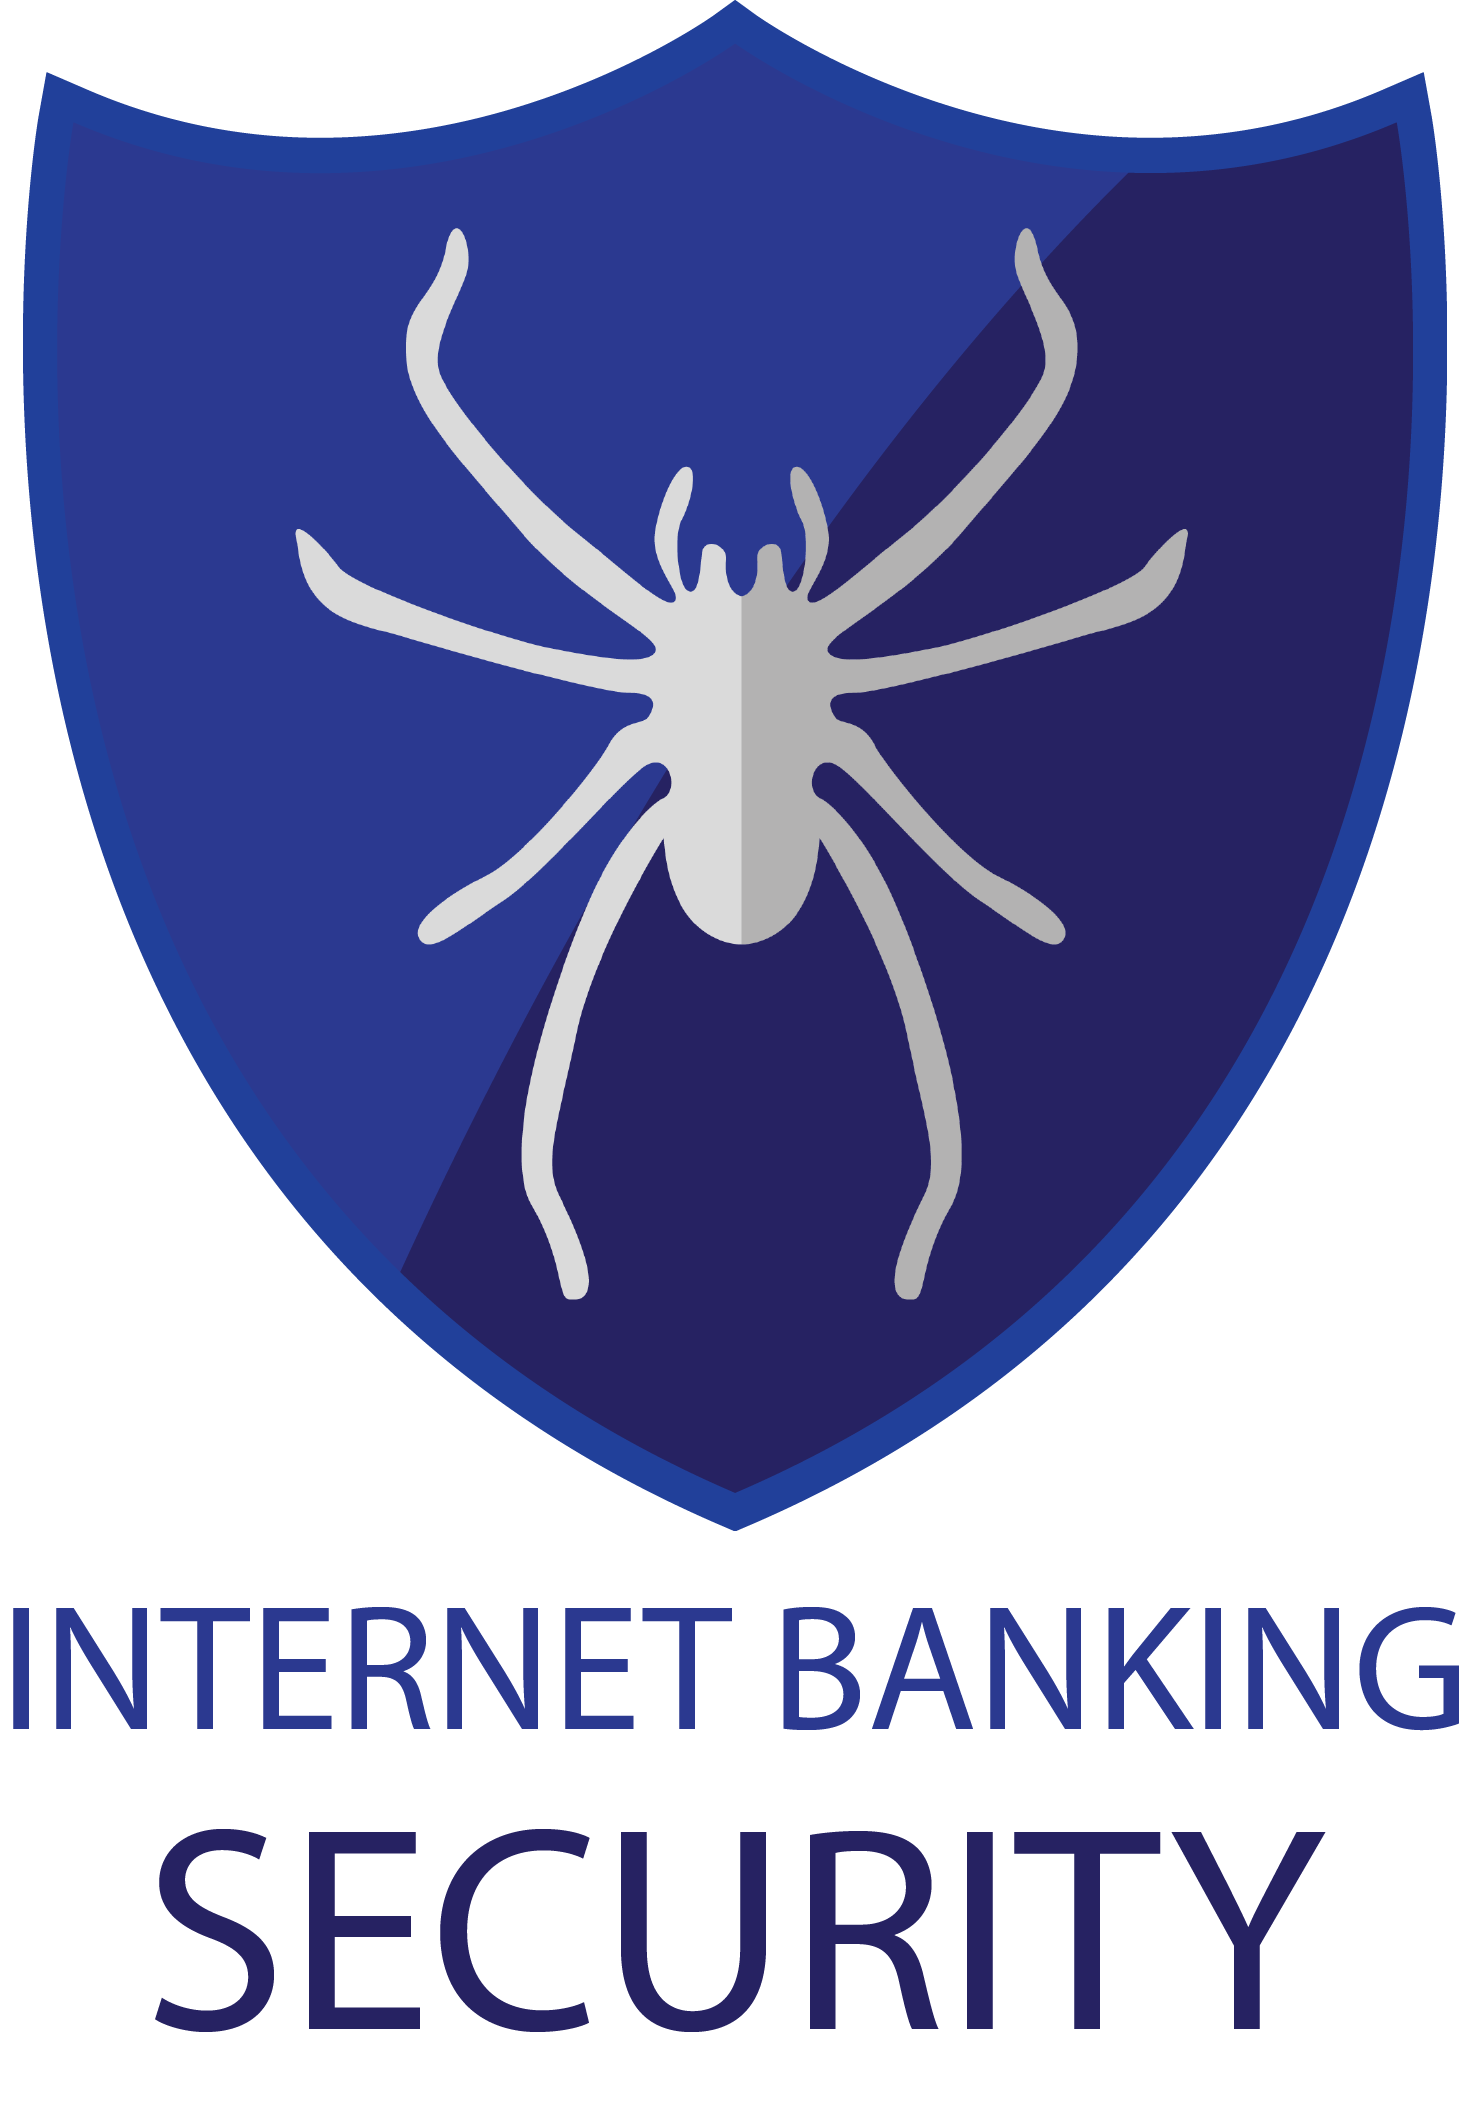 gigacon-internet-banking-security-sierpien-2019